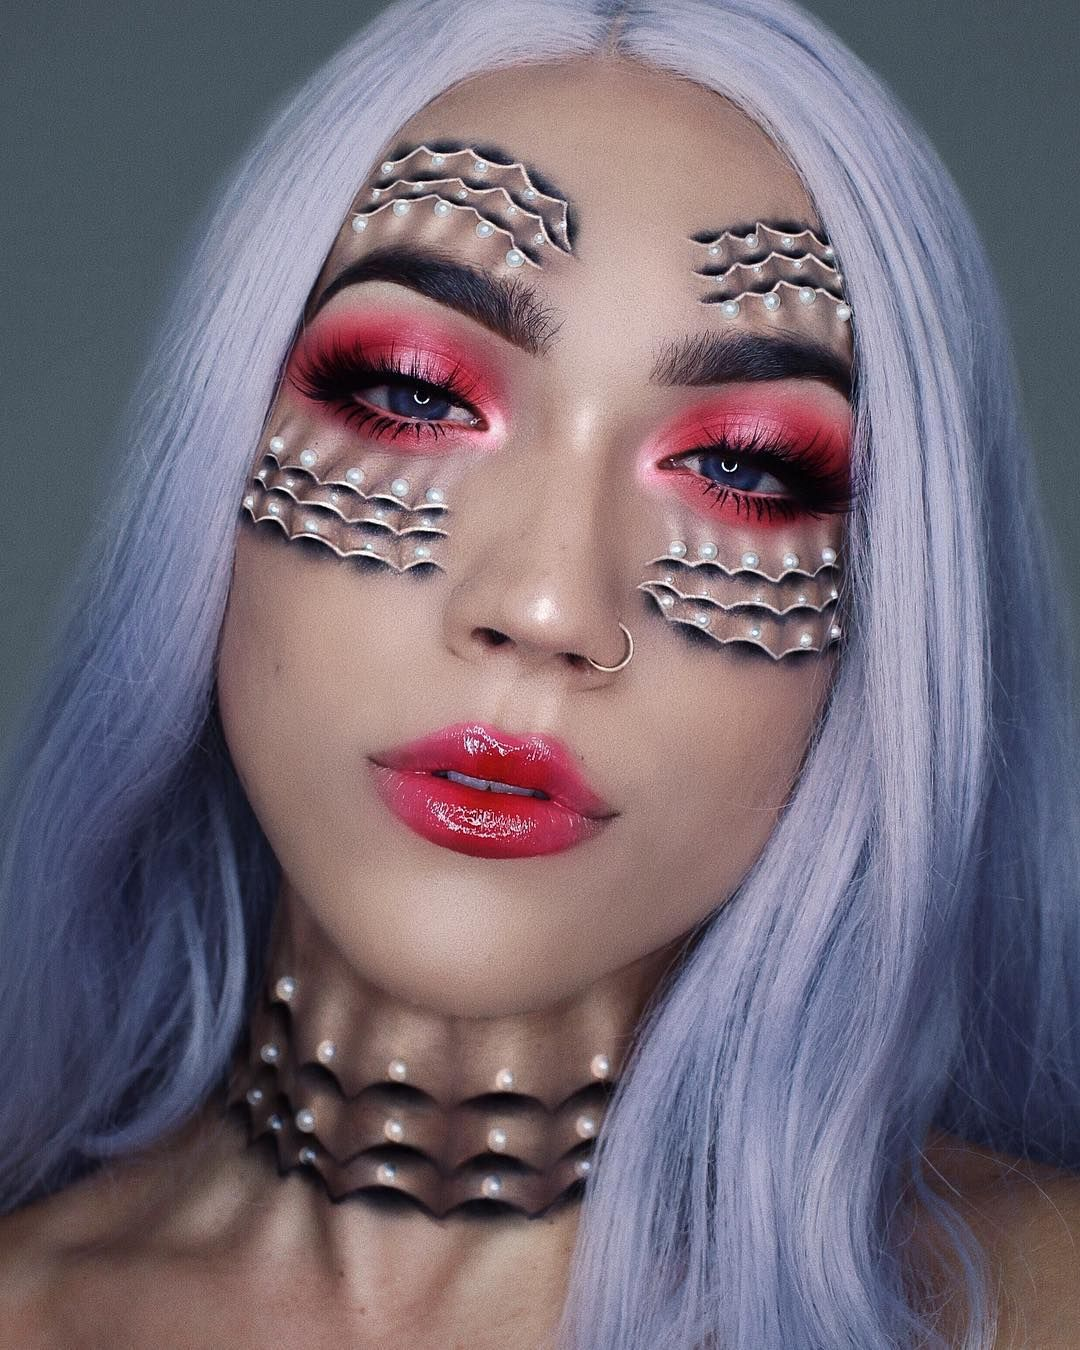 Makeup Artist Transforms Her Eyelids into Two